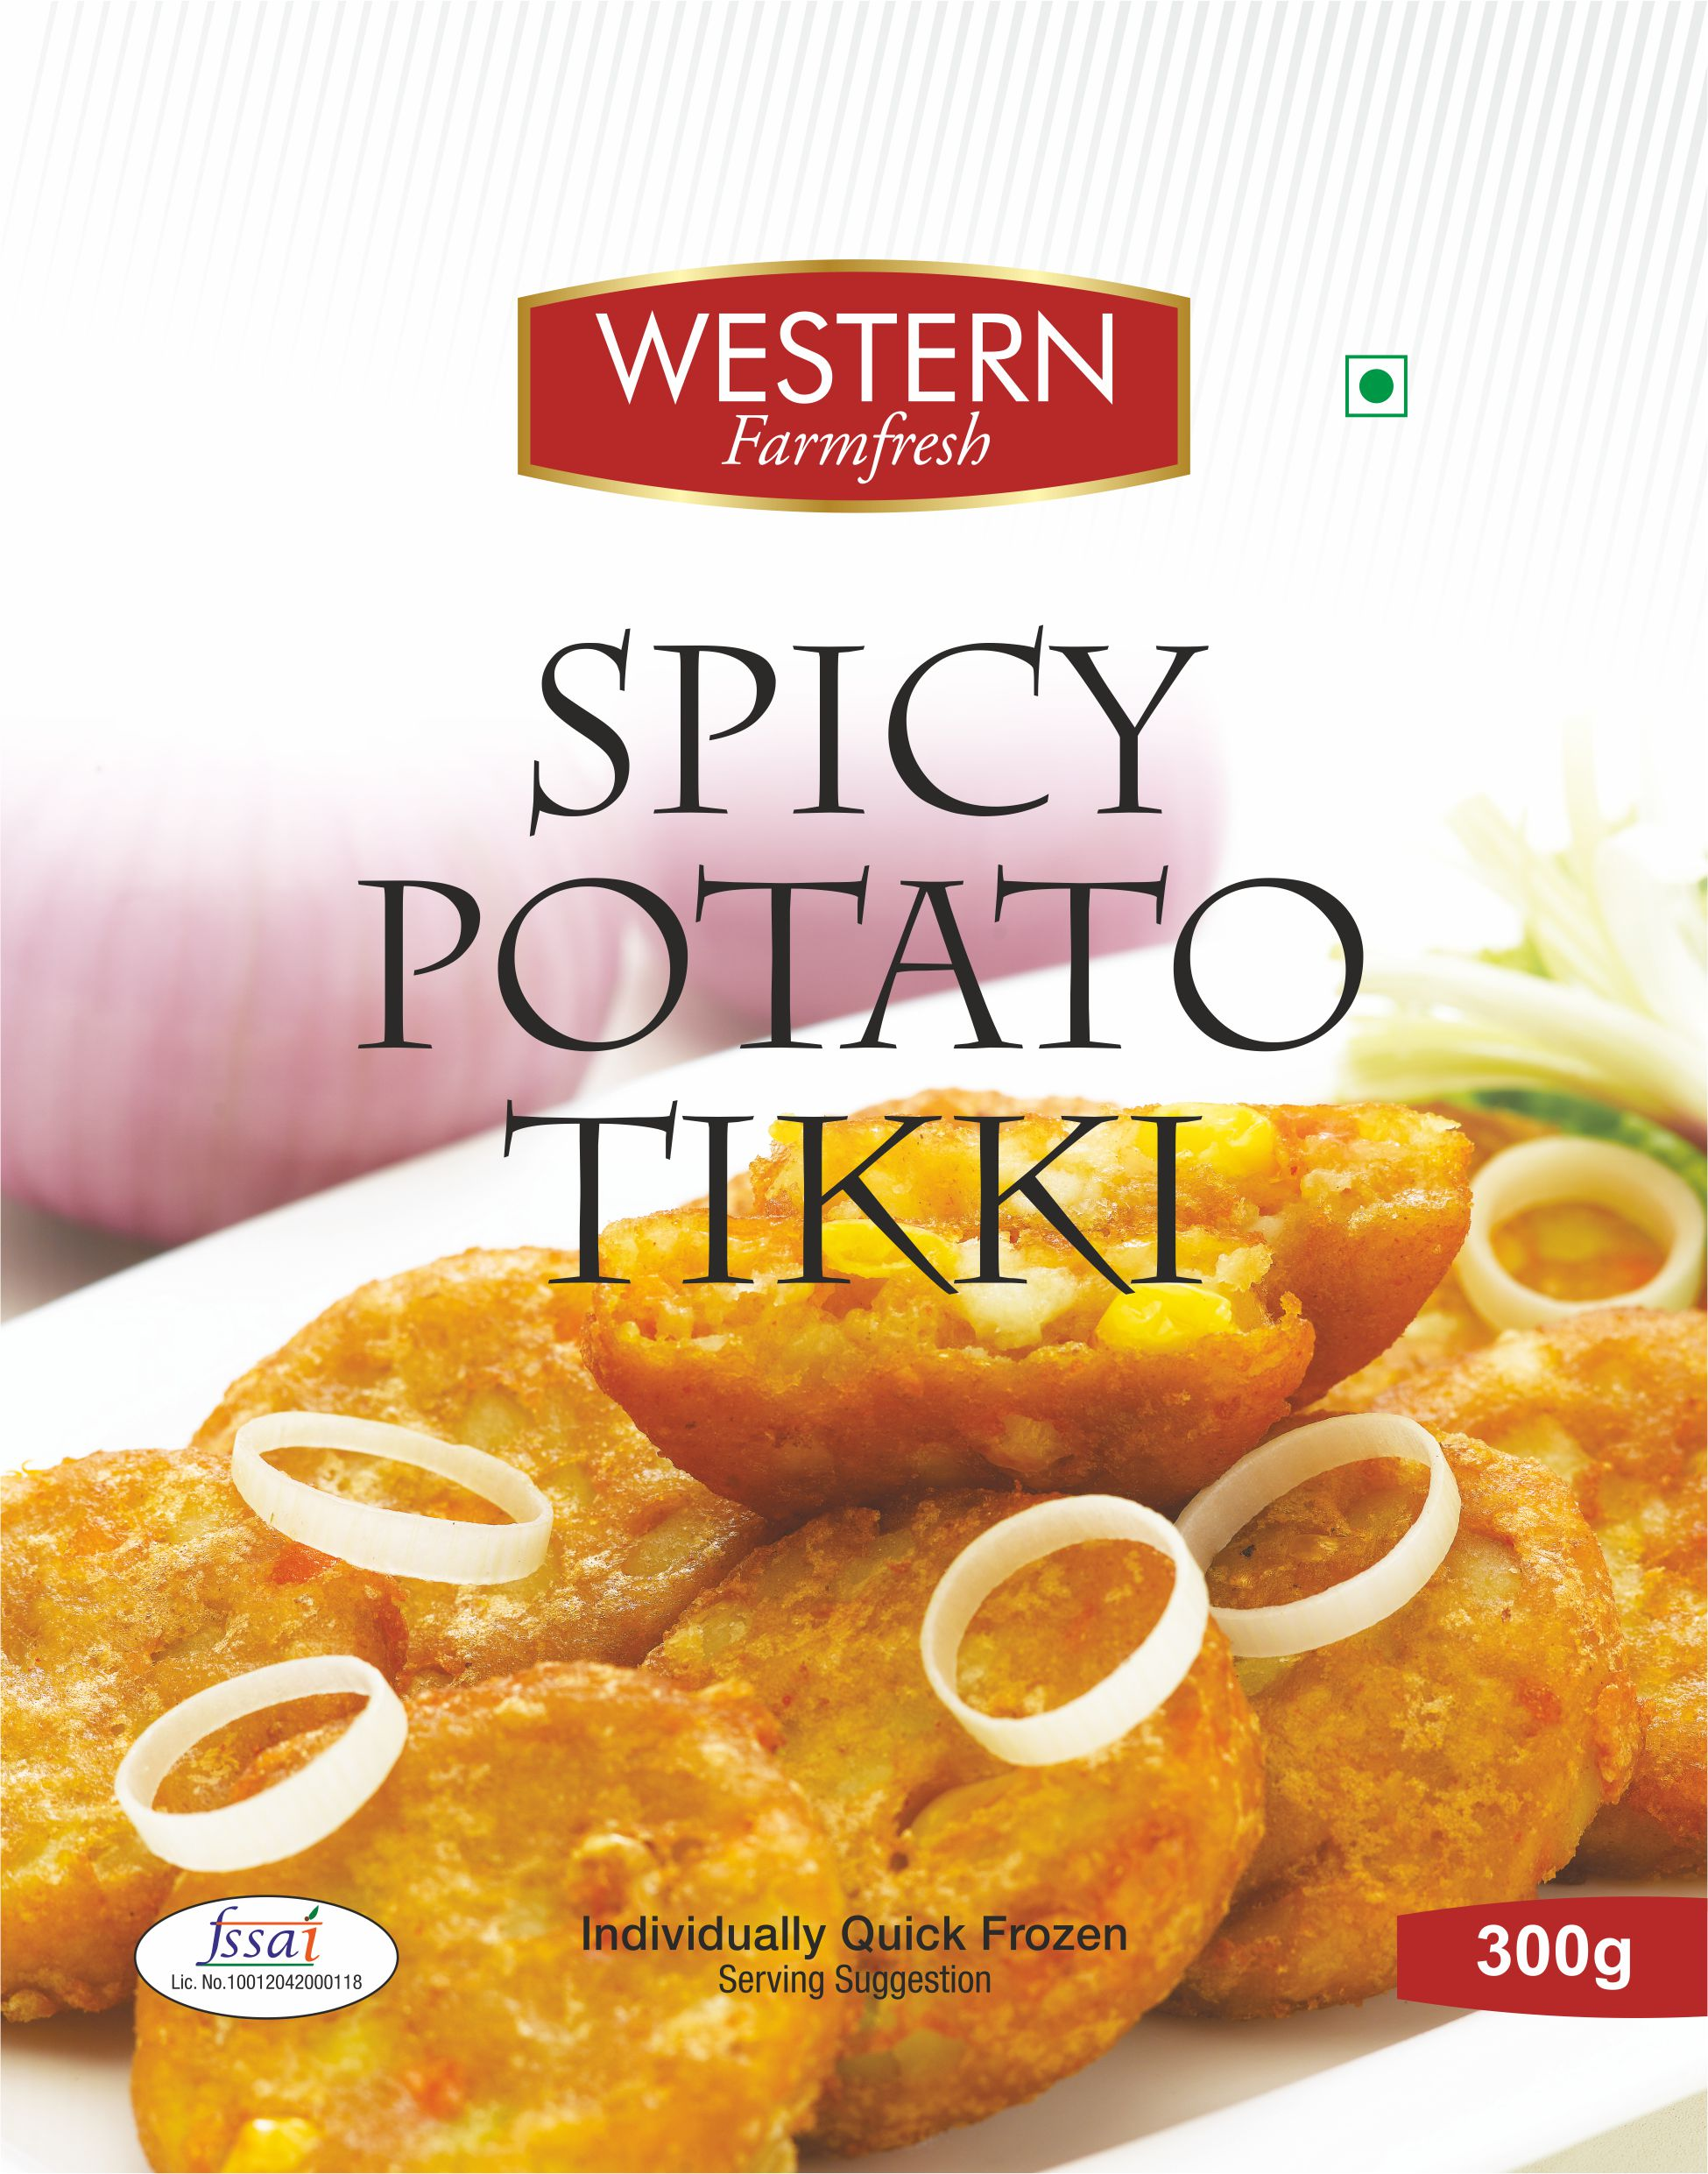 Spicy Potato Tikki